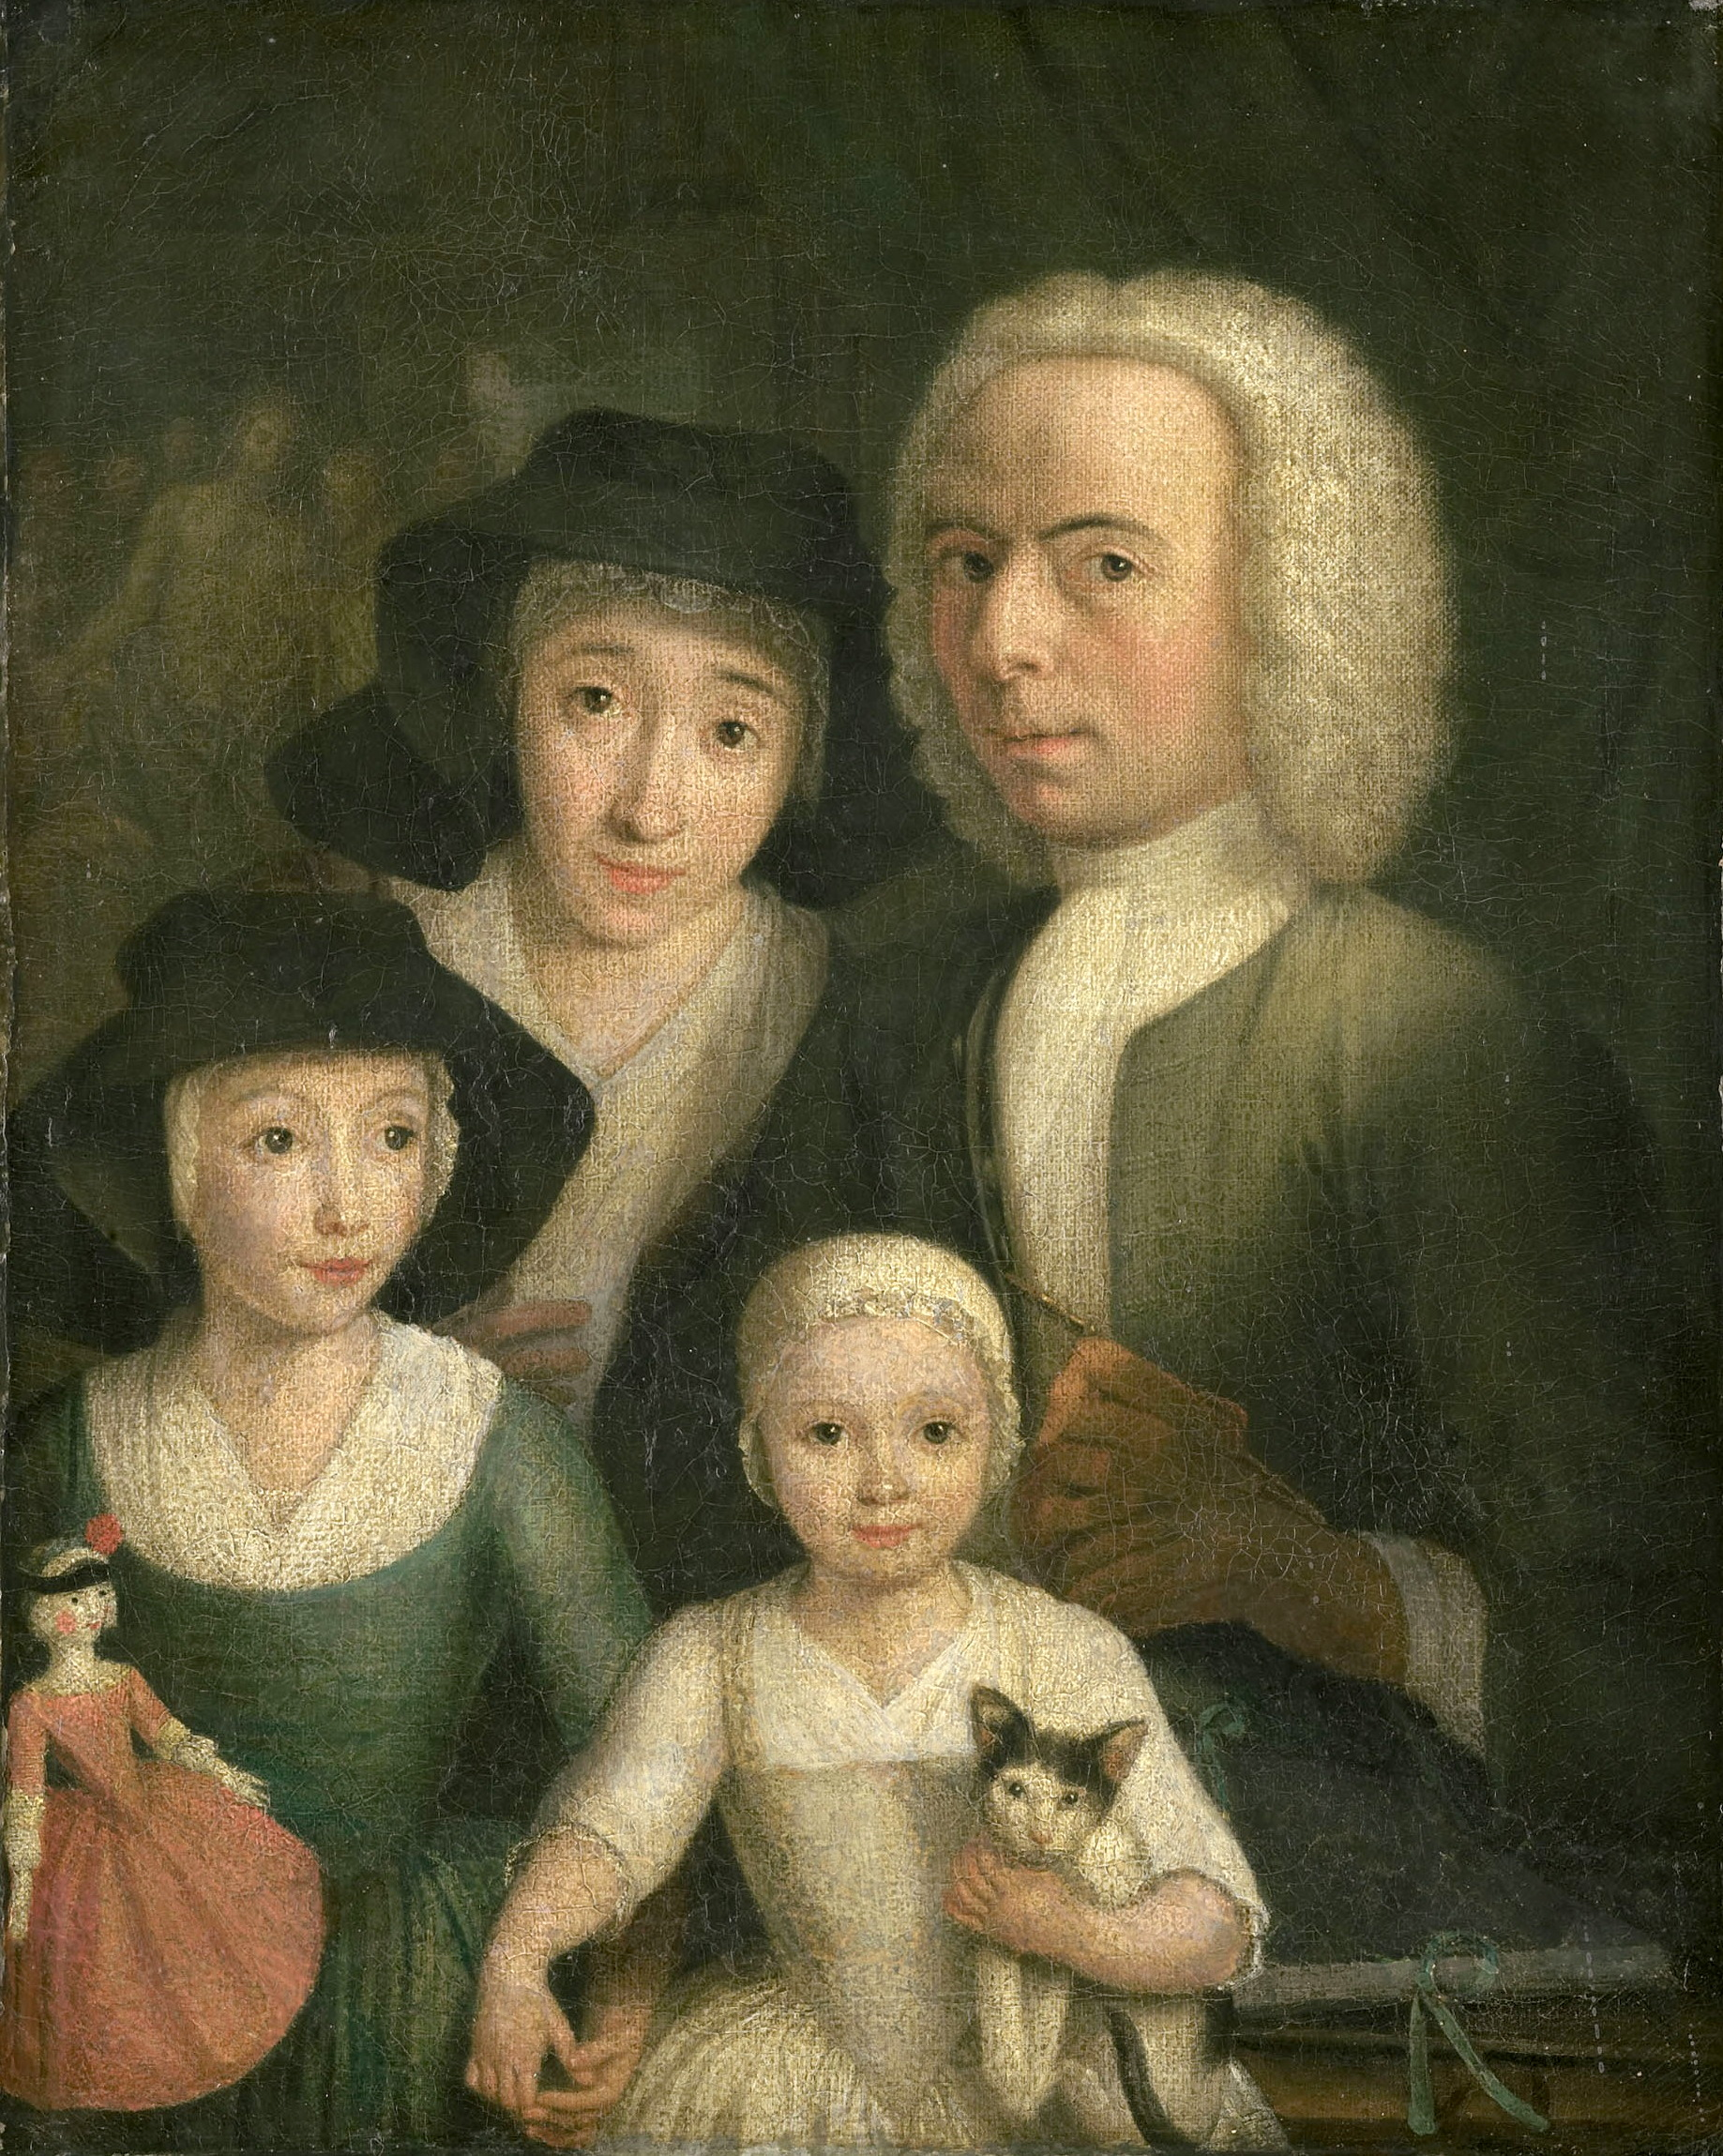 Selfportrait with Family by Hendrik Spilman ~1760